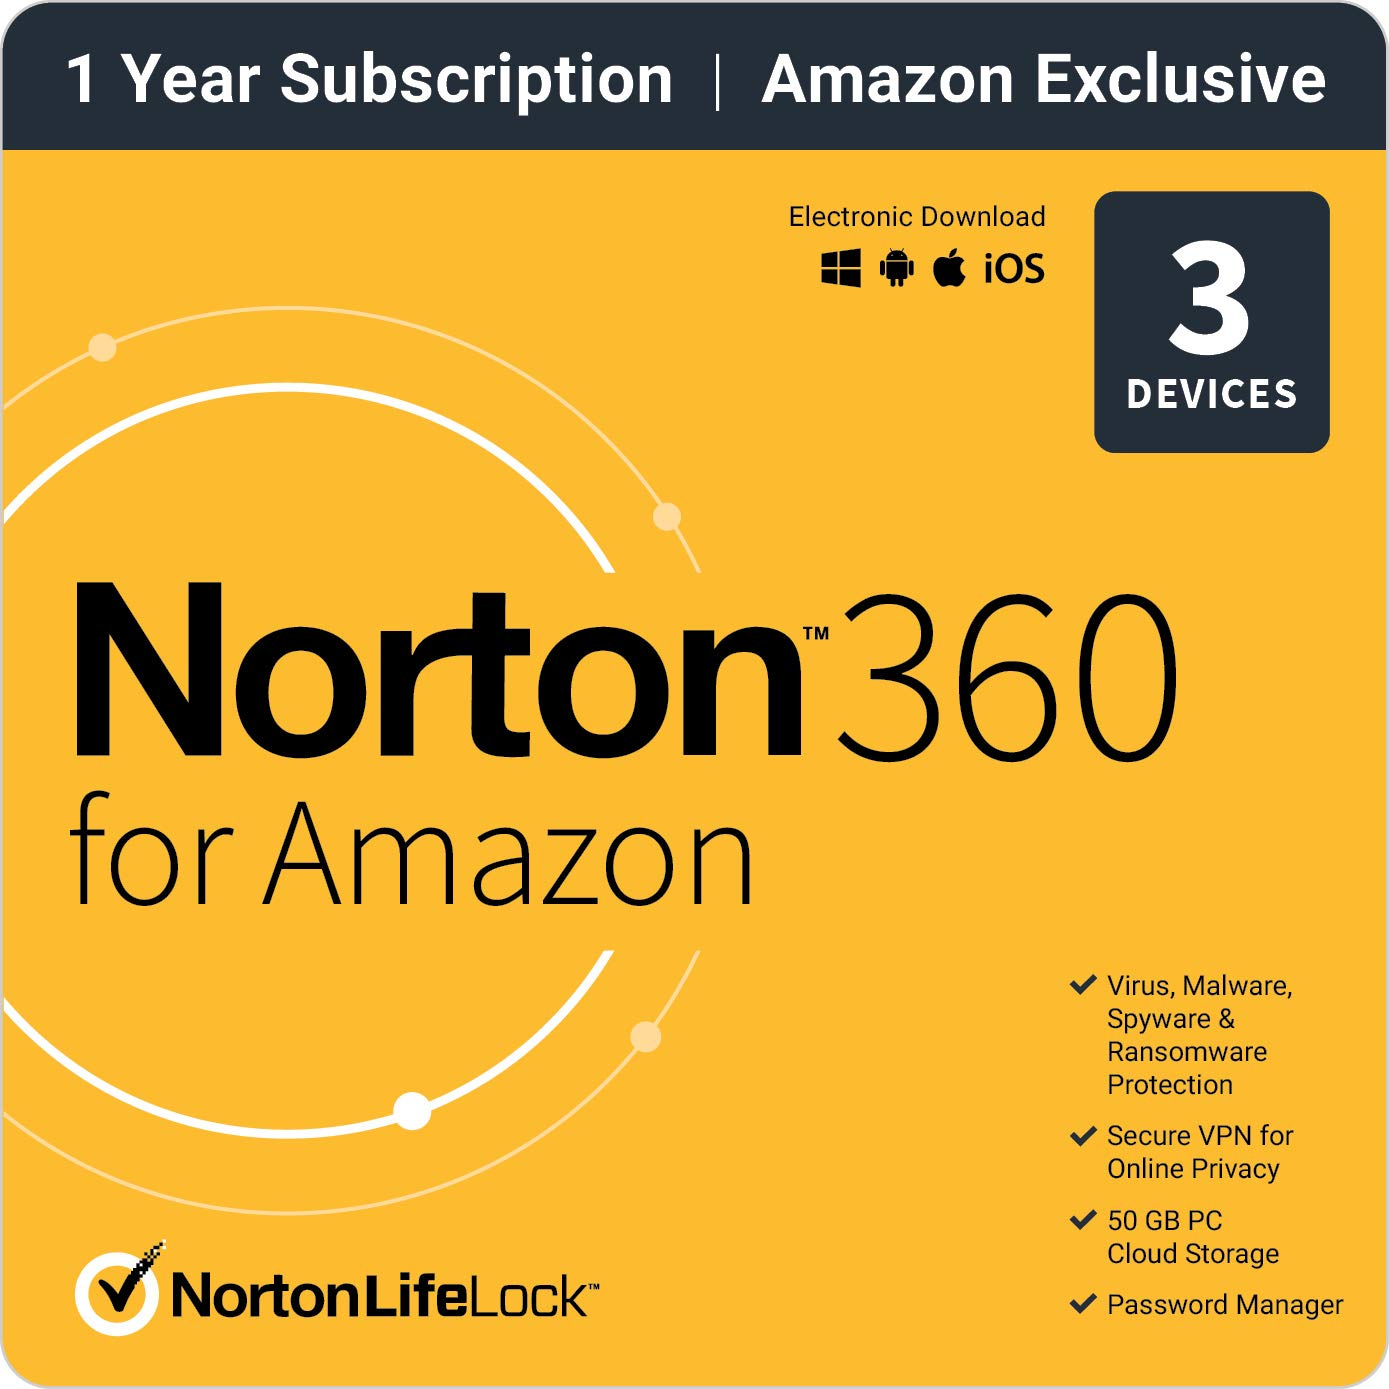 Norton 360 for Amazon  Antivirus software for up to 3 Devices with Auto Renewal